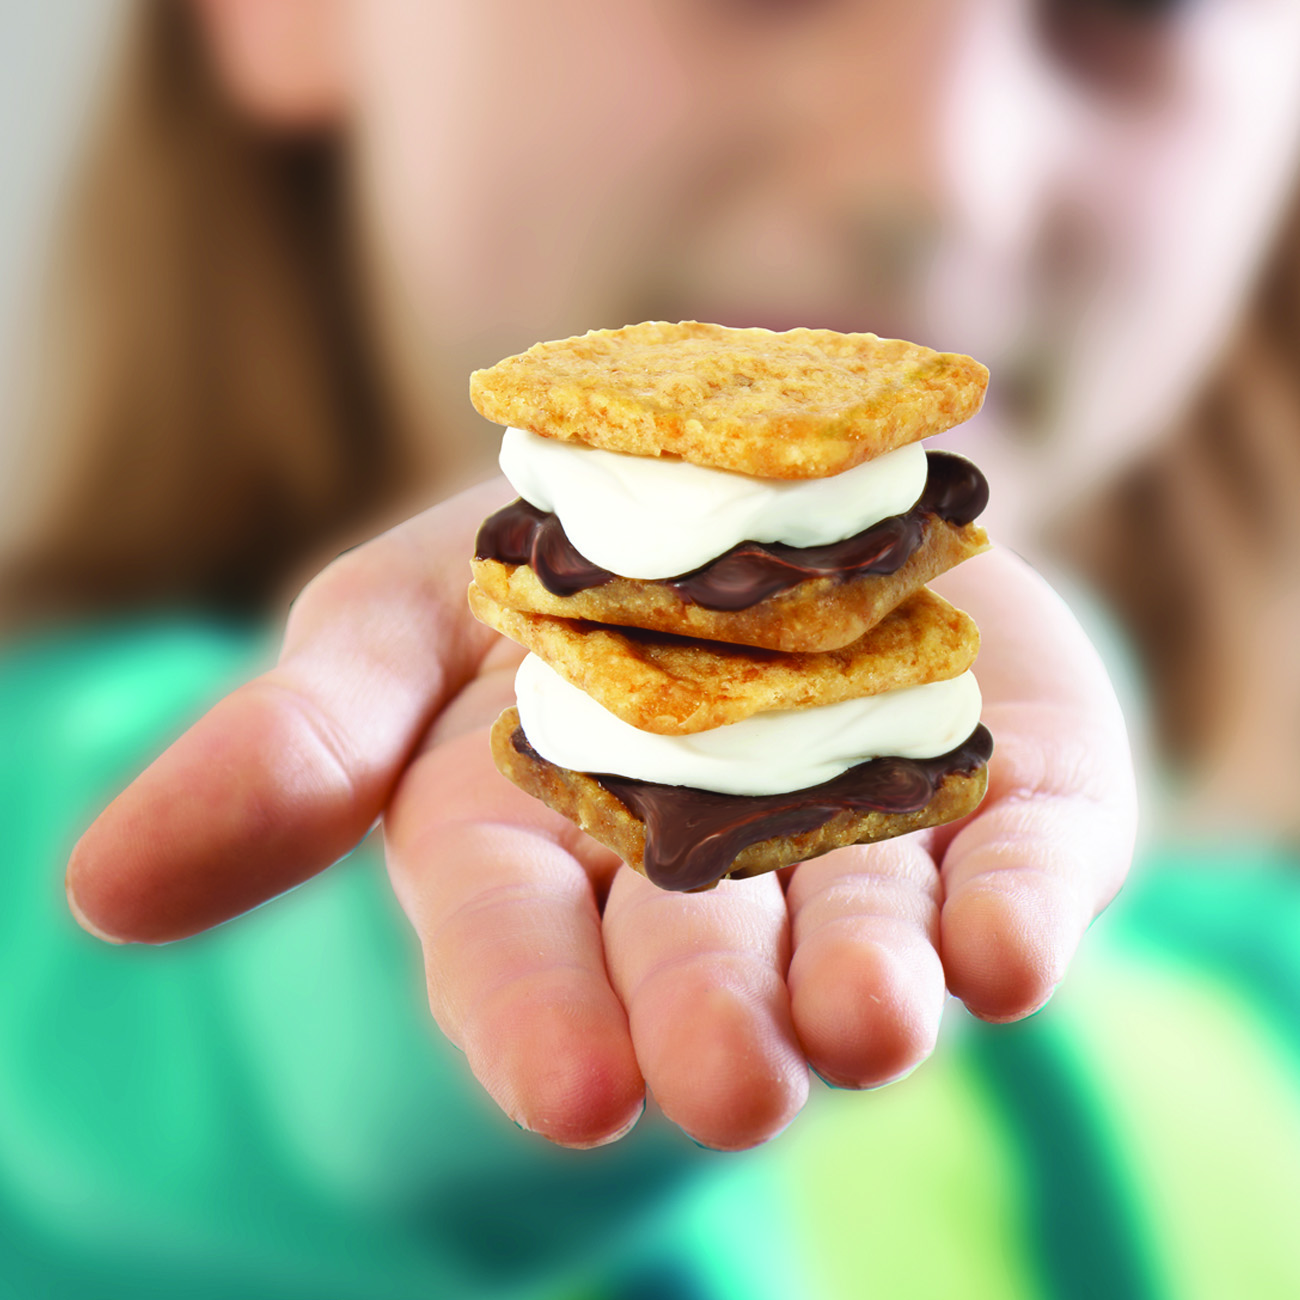 Mini Real Food Kitchen: Blip Toys Releases New Yummy Nummies S'mores Maker Playset